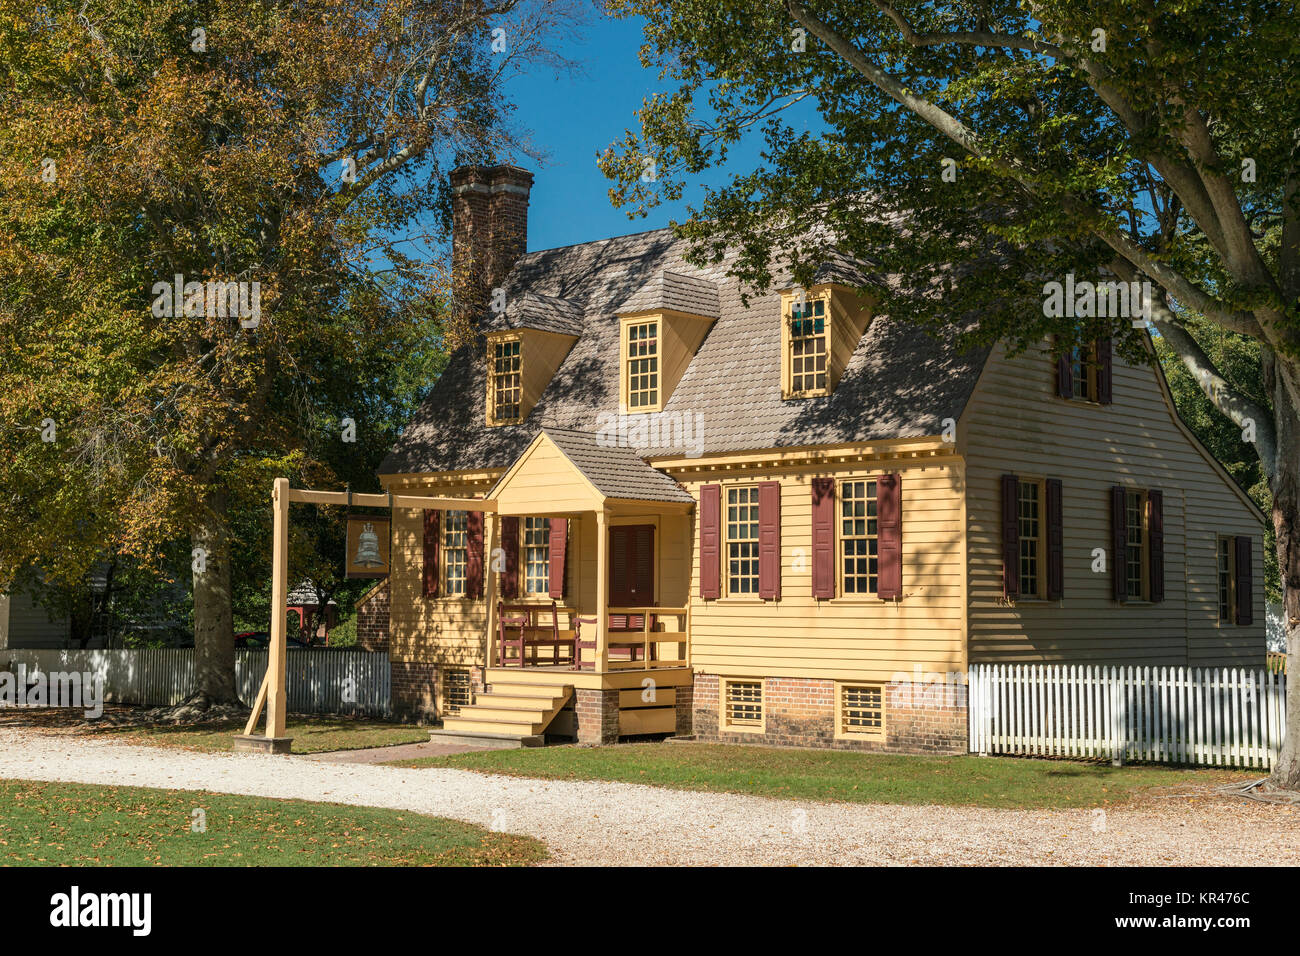 Blue Bell tenement or ordinary in Colonial Williamsburg. - Stock Image